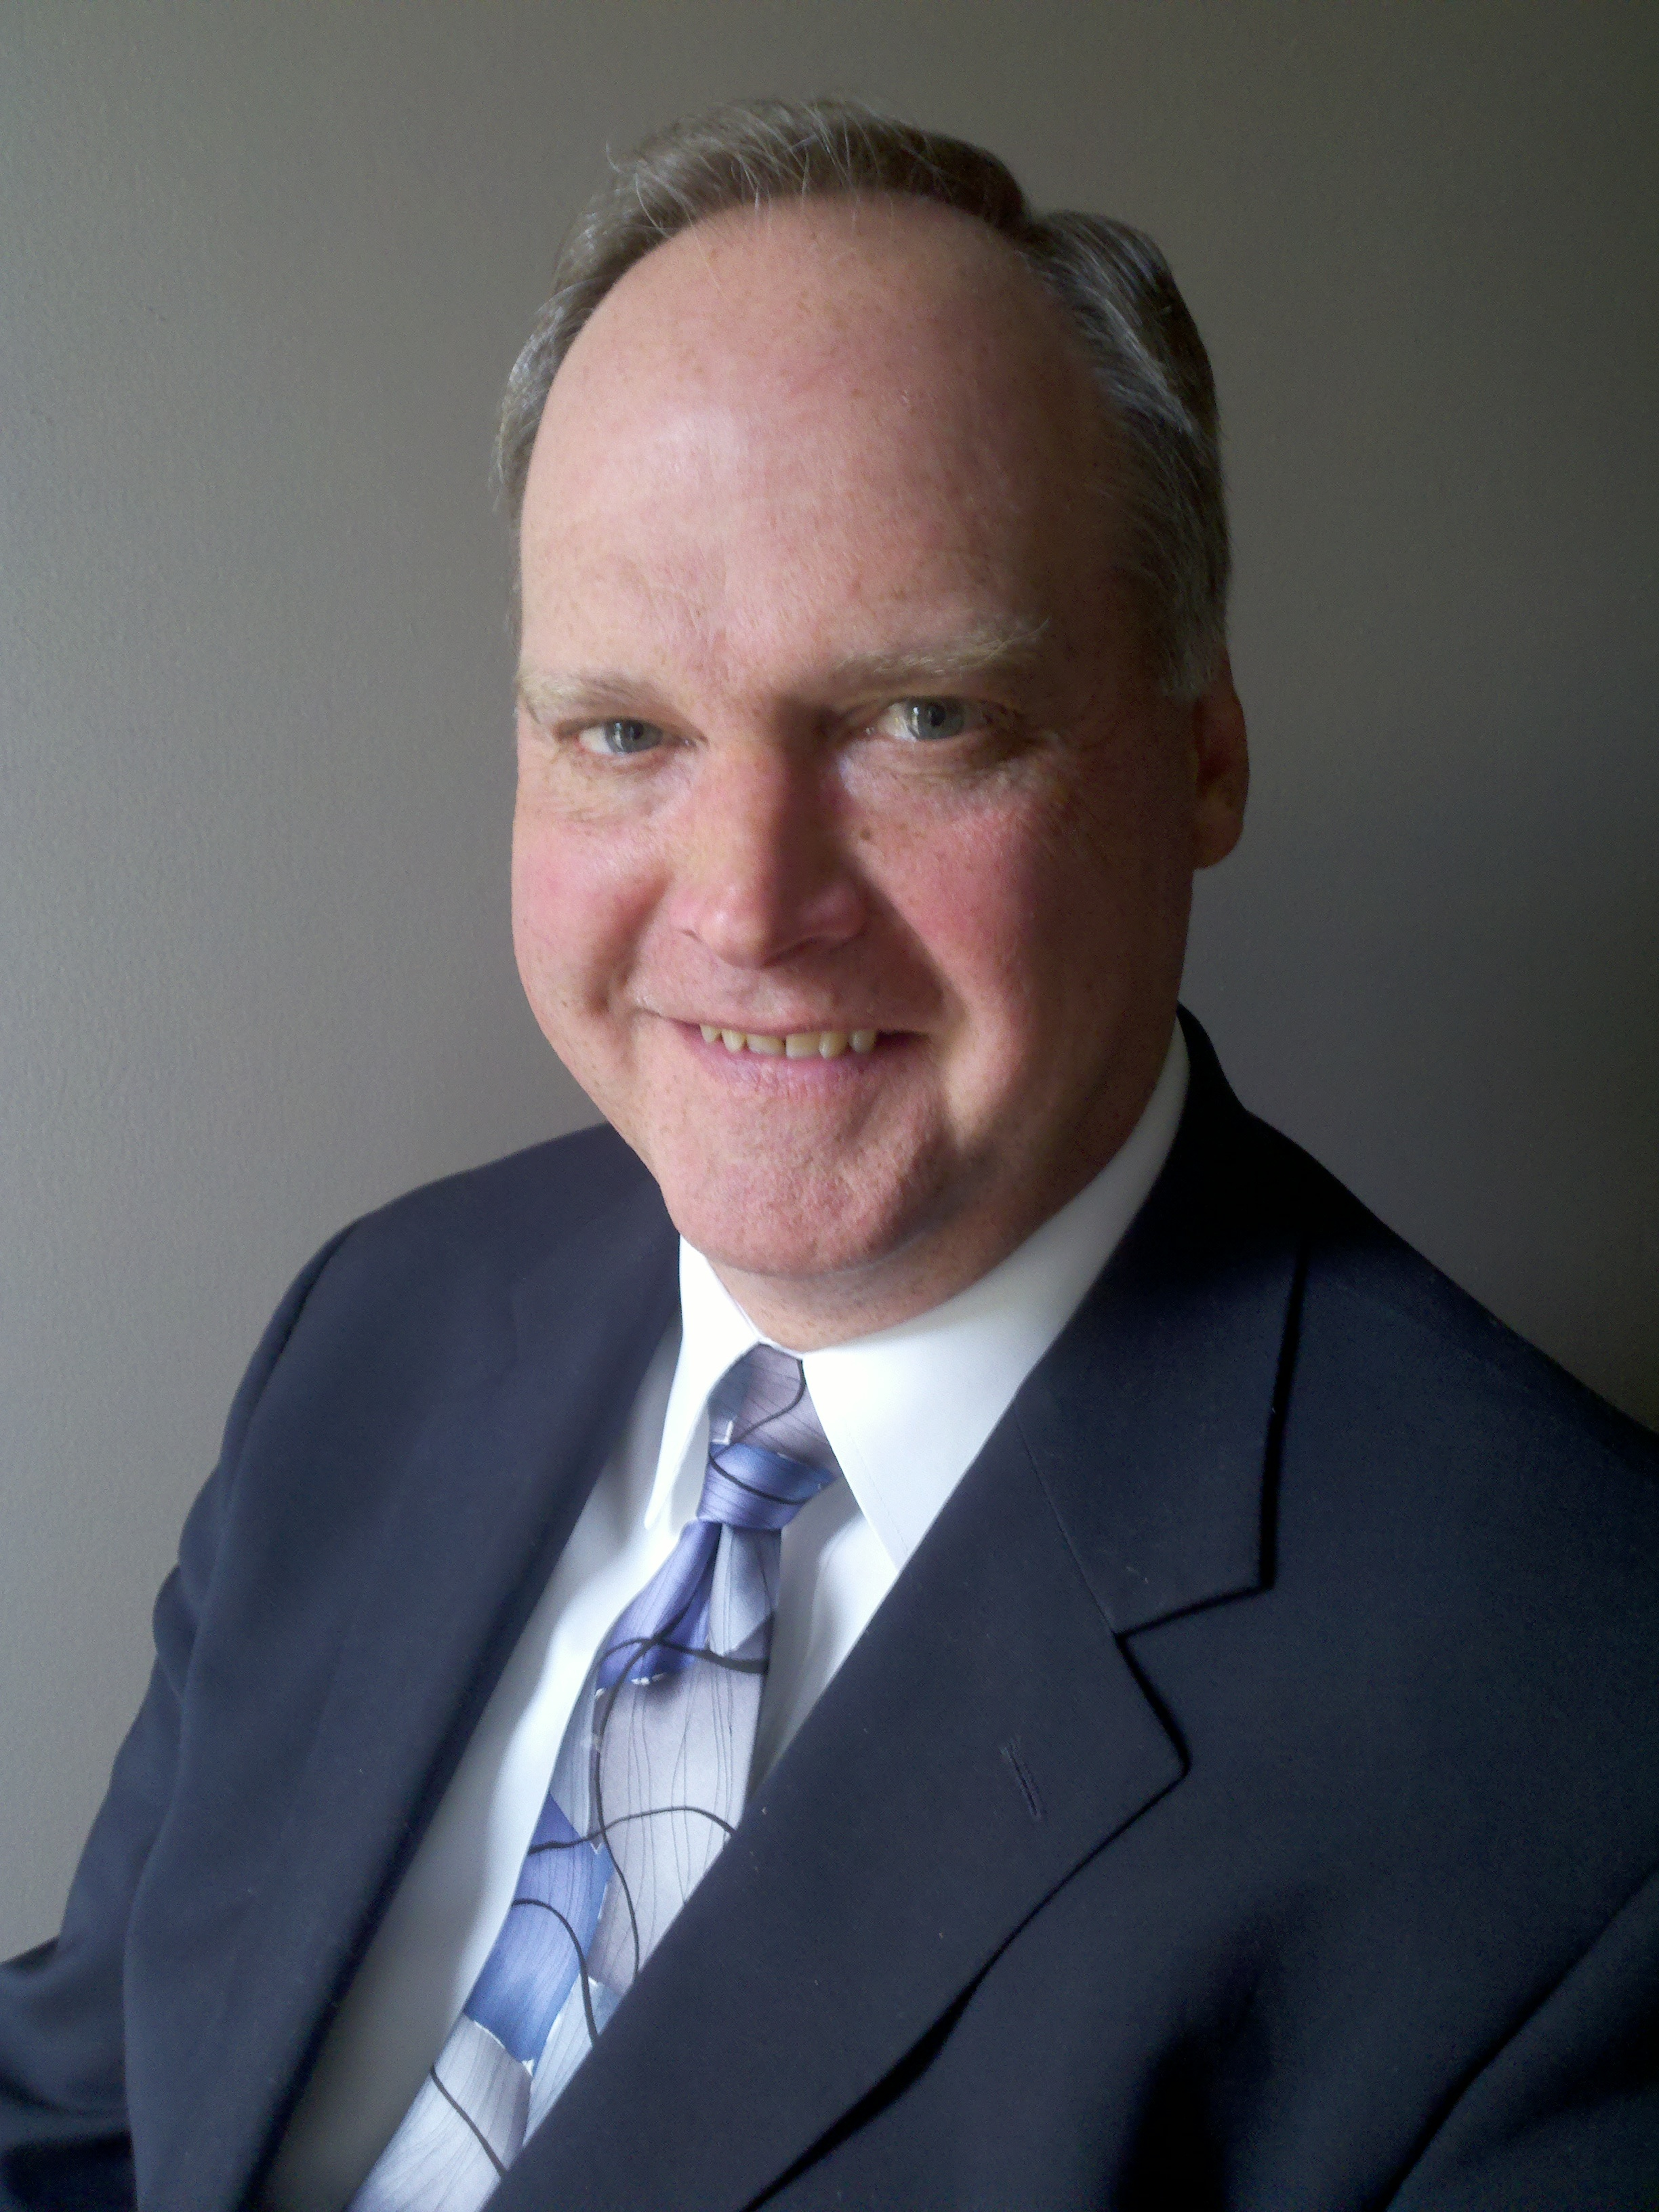 Scott Wiard, financial advisor Ann Arbor MI